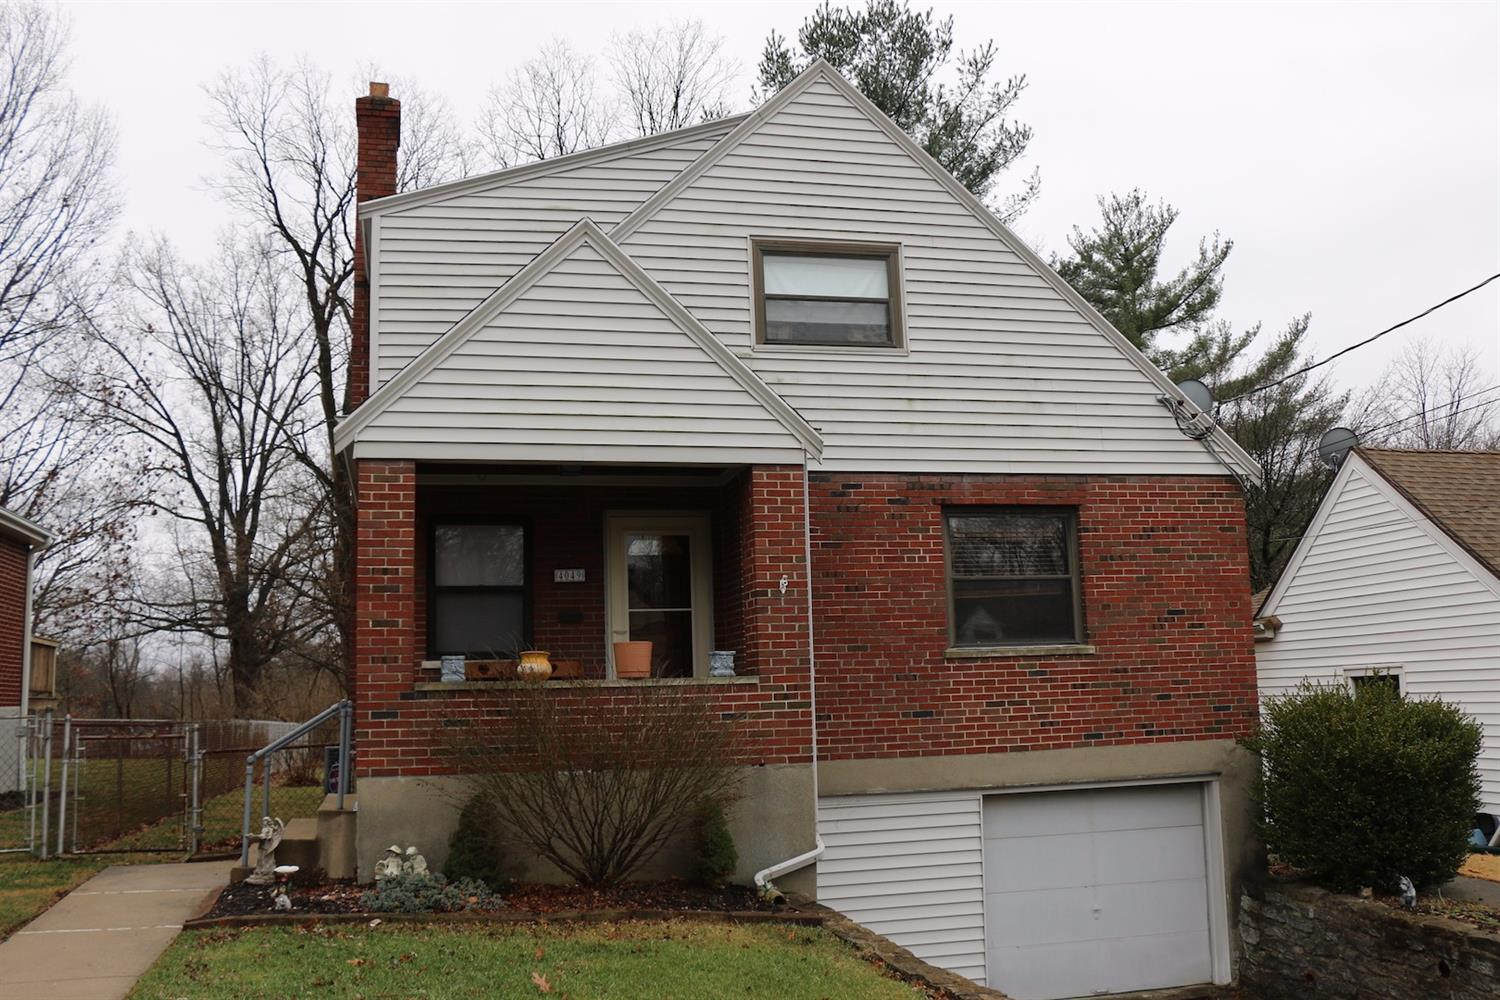 4049 Homelawn Ave Cheviot, OH